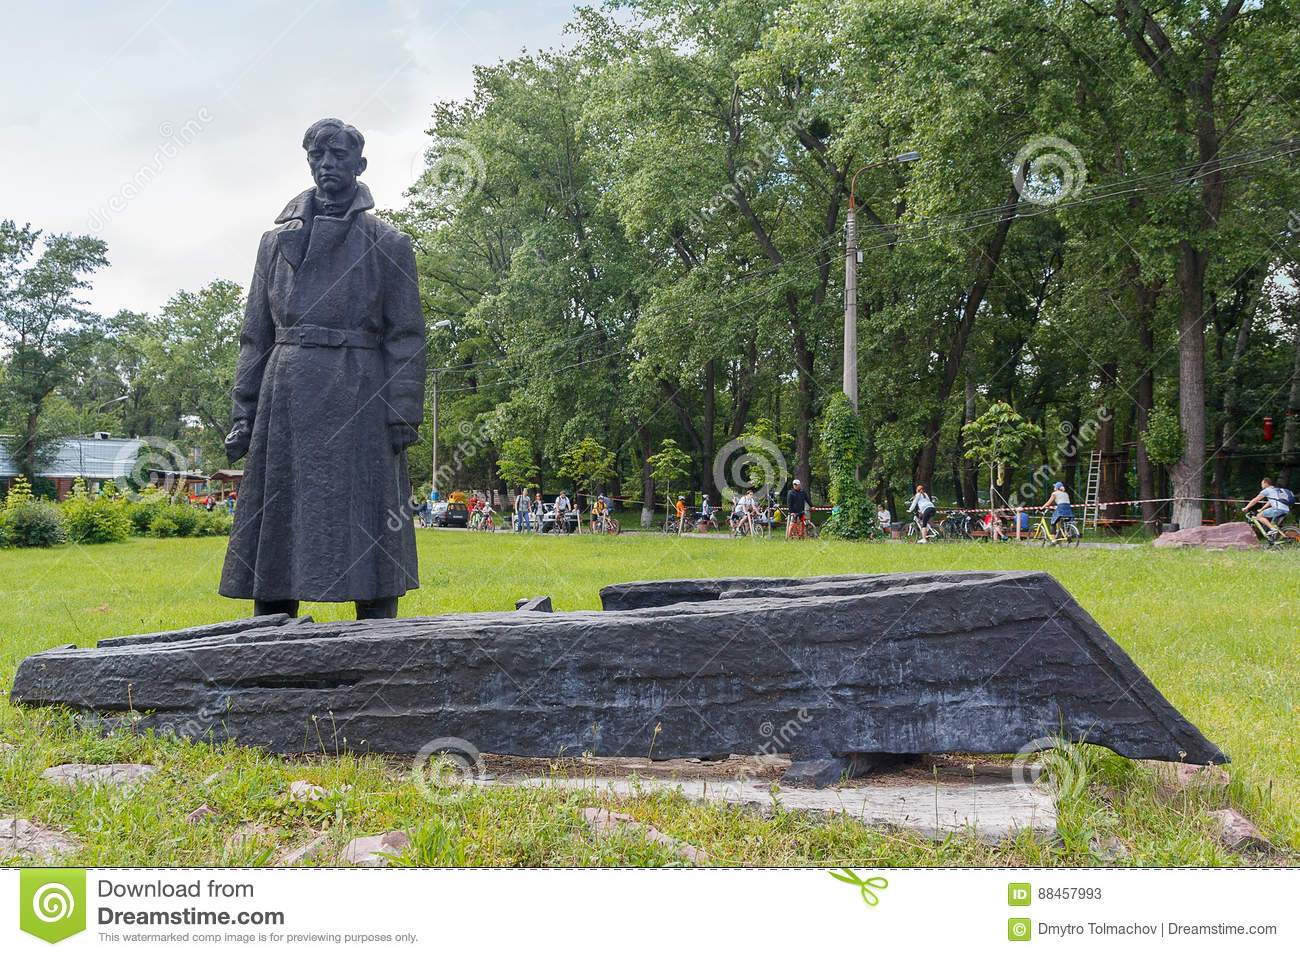 Kiev, Ukraine - June 12, 2016: Monument to the Red Army soldier